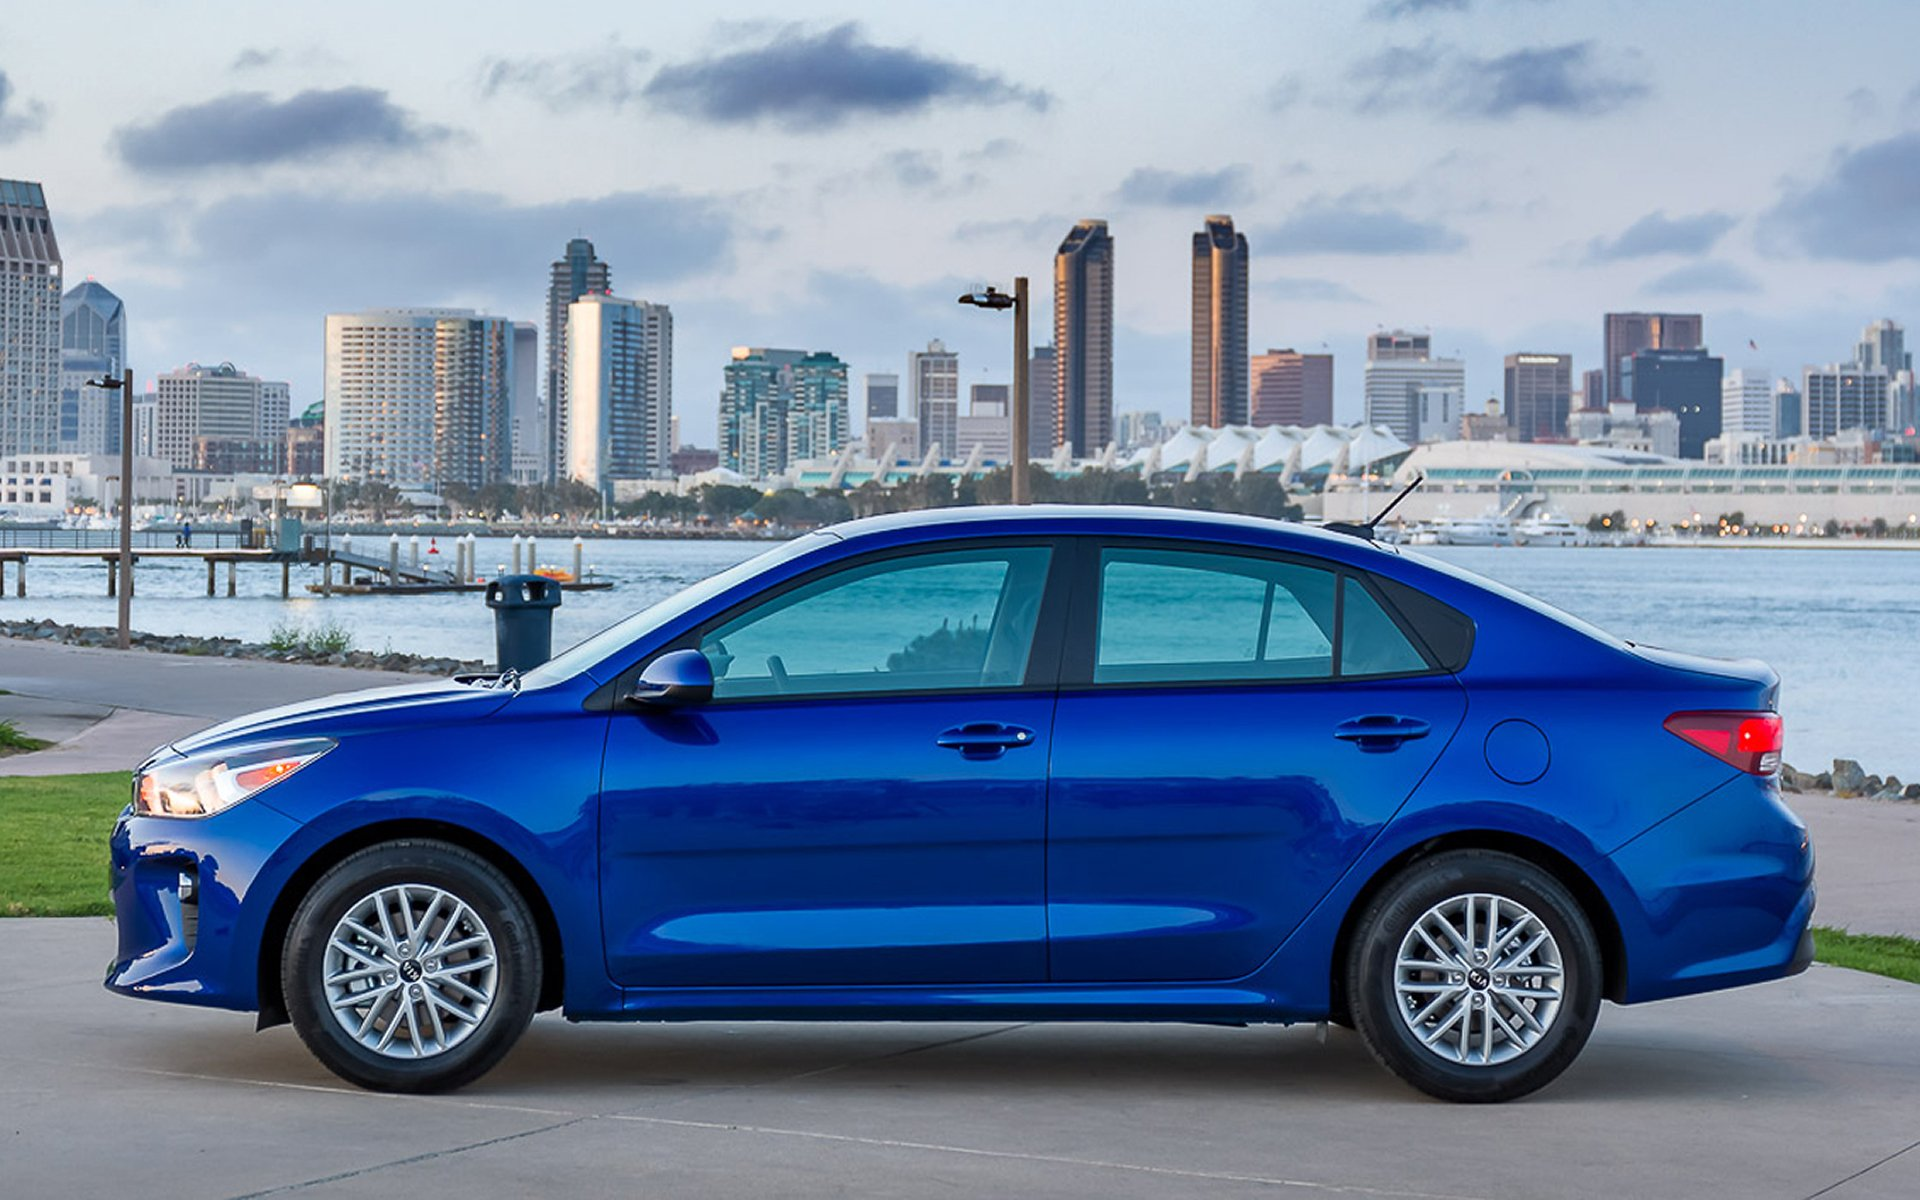 Michigan - 2018 KIA Rio's Overview